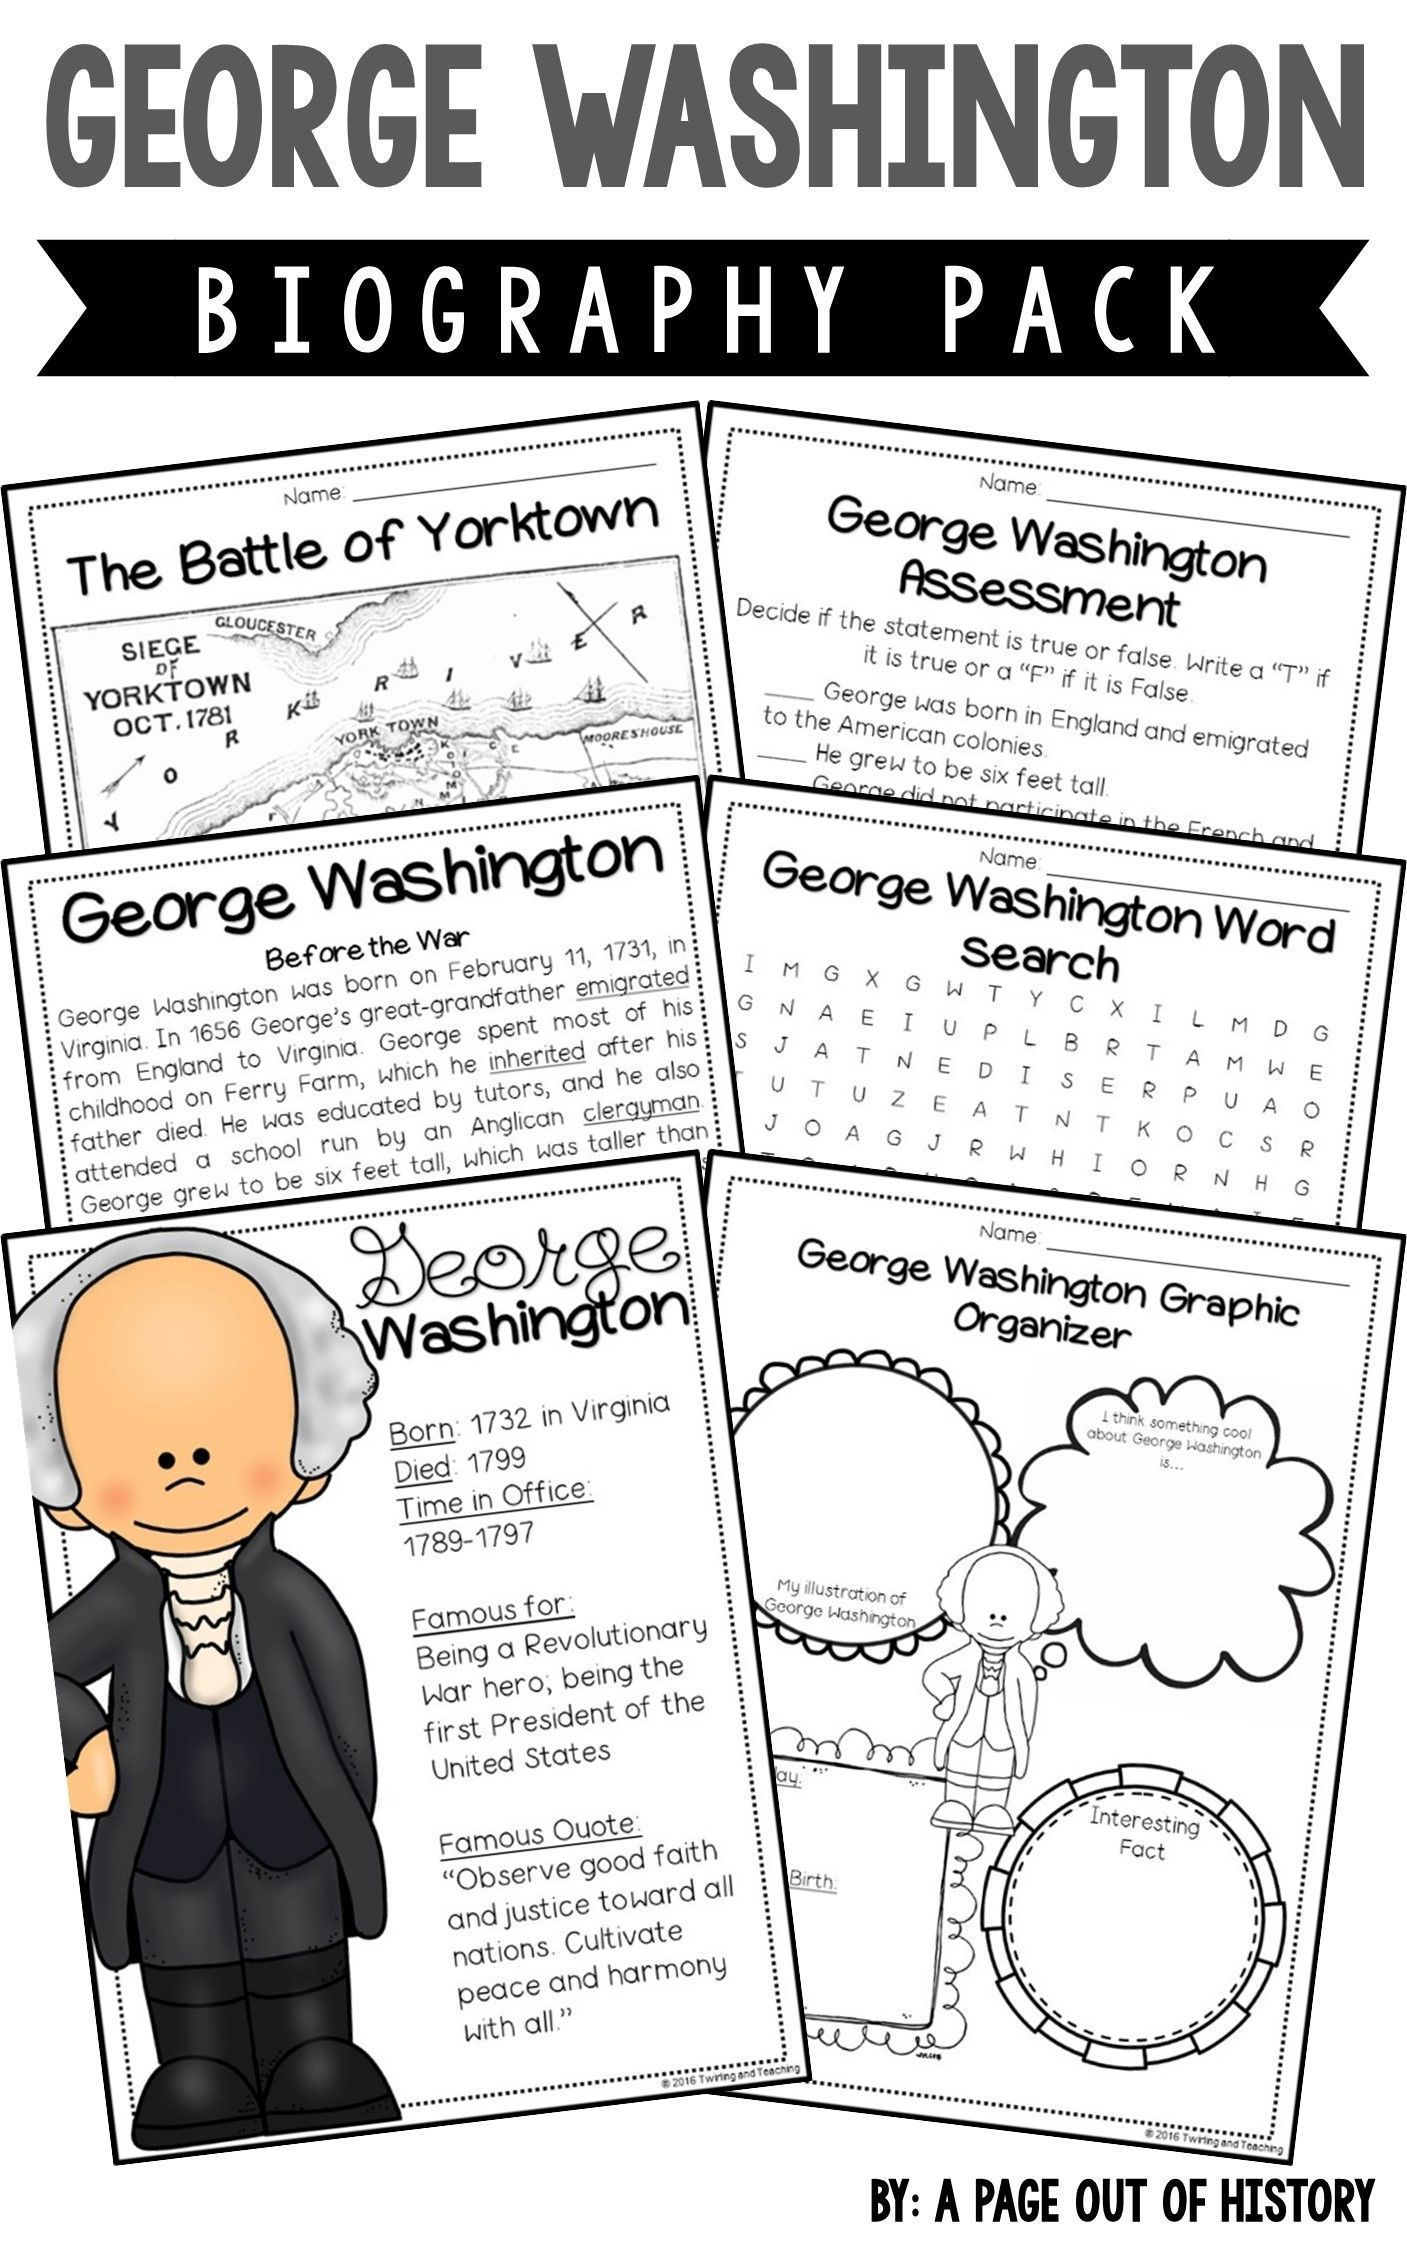 George Washington Biography Pack U S Presidents In